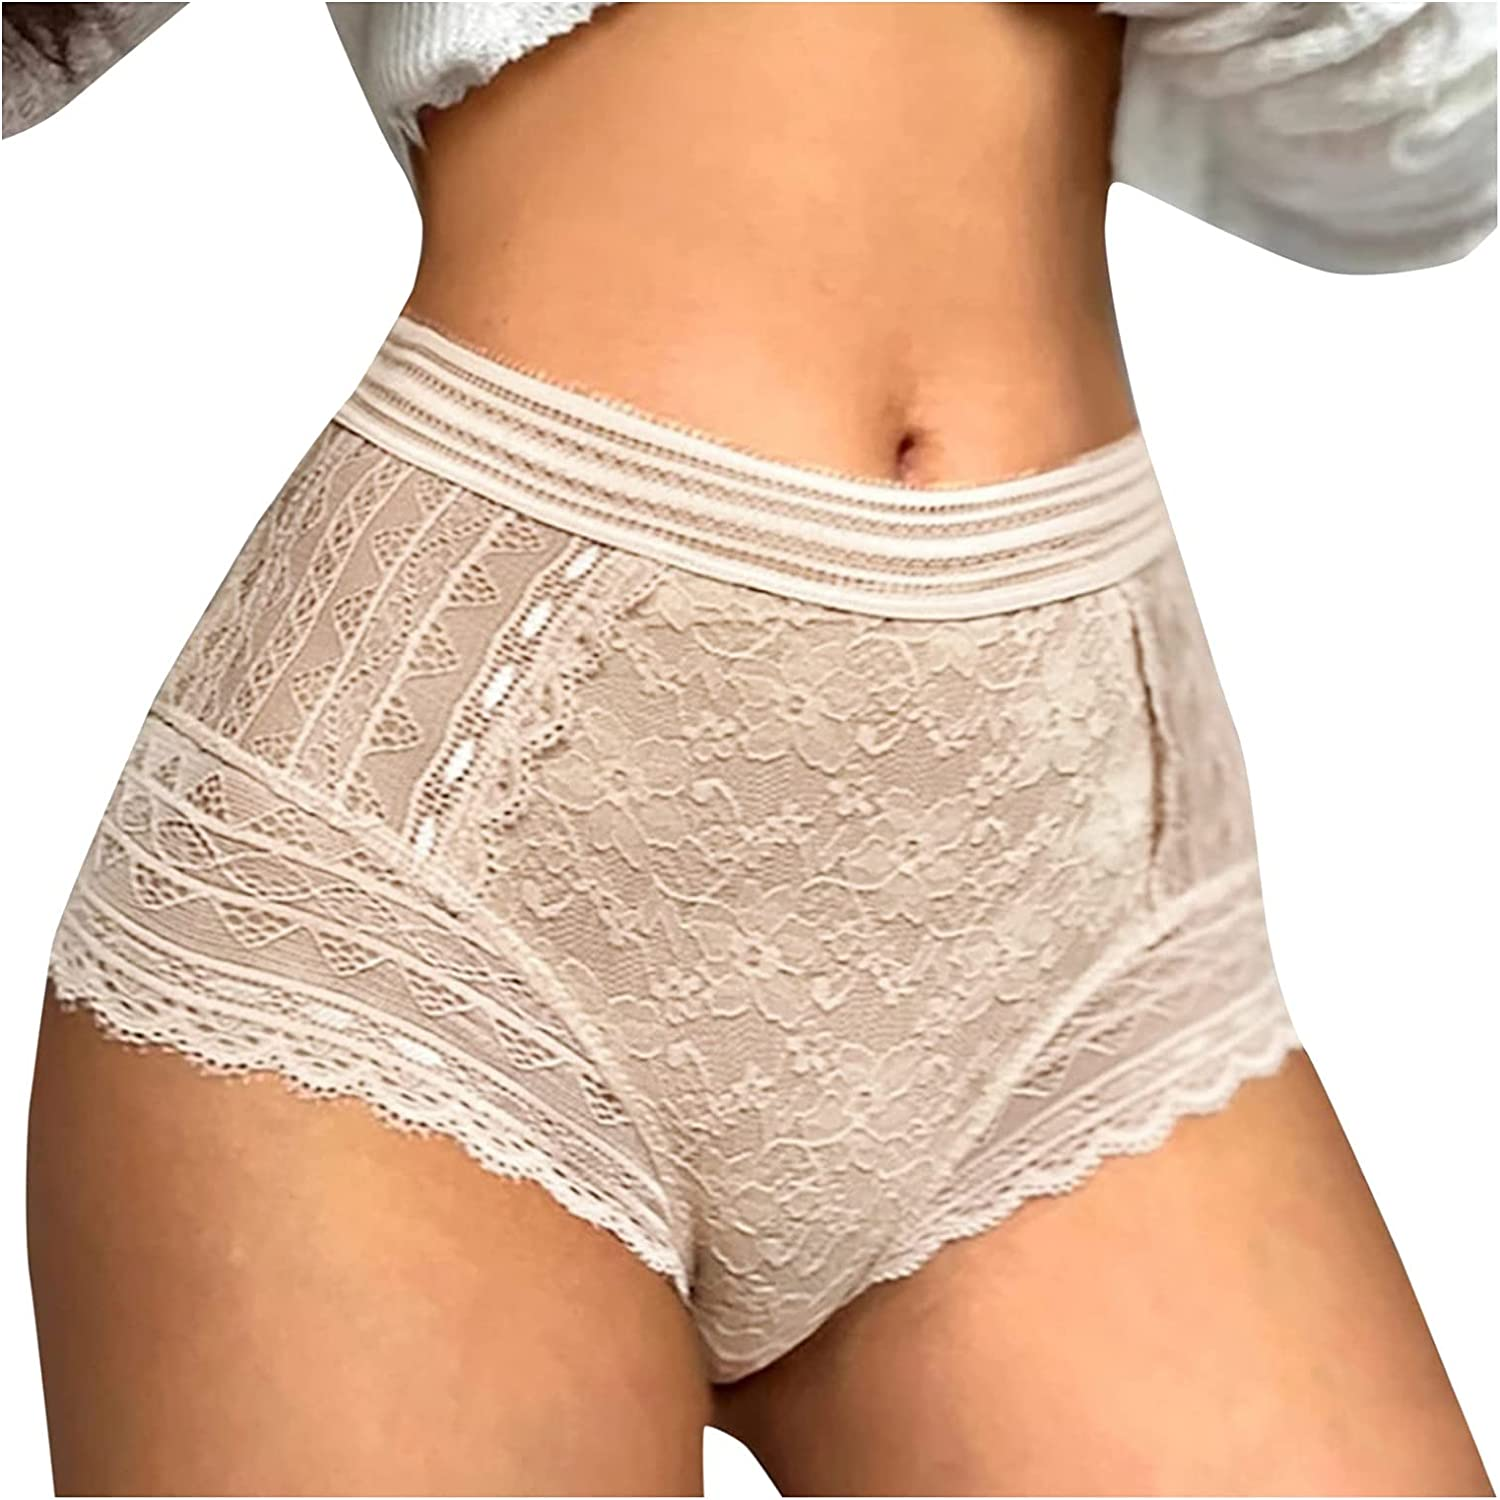 A2A Womens Underwear Invisible Seamless Hipster Lace Underpants Full Coverage Panties Hollow Out High Waisted Boyshort